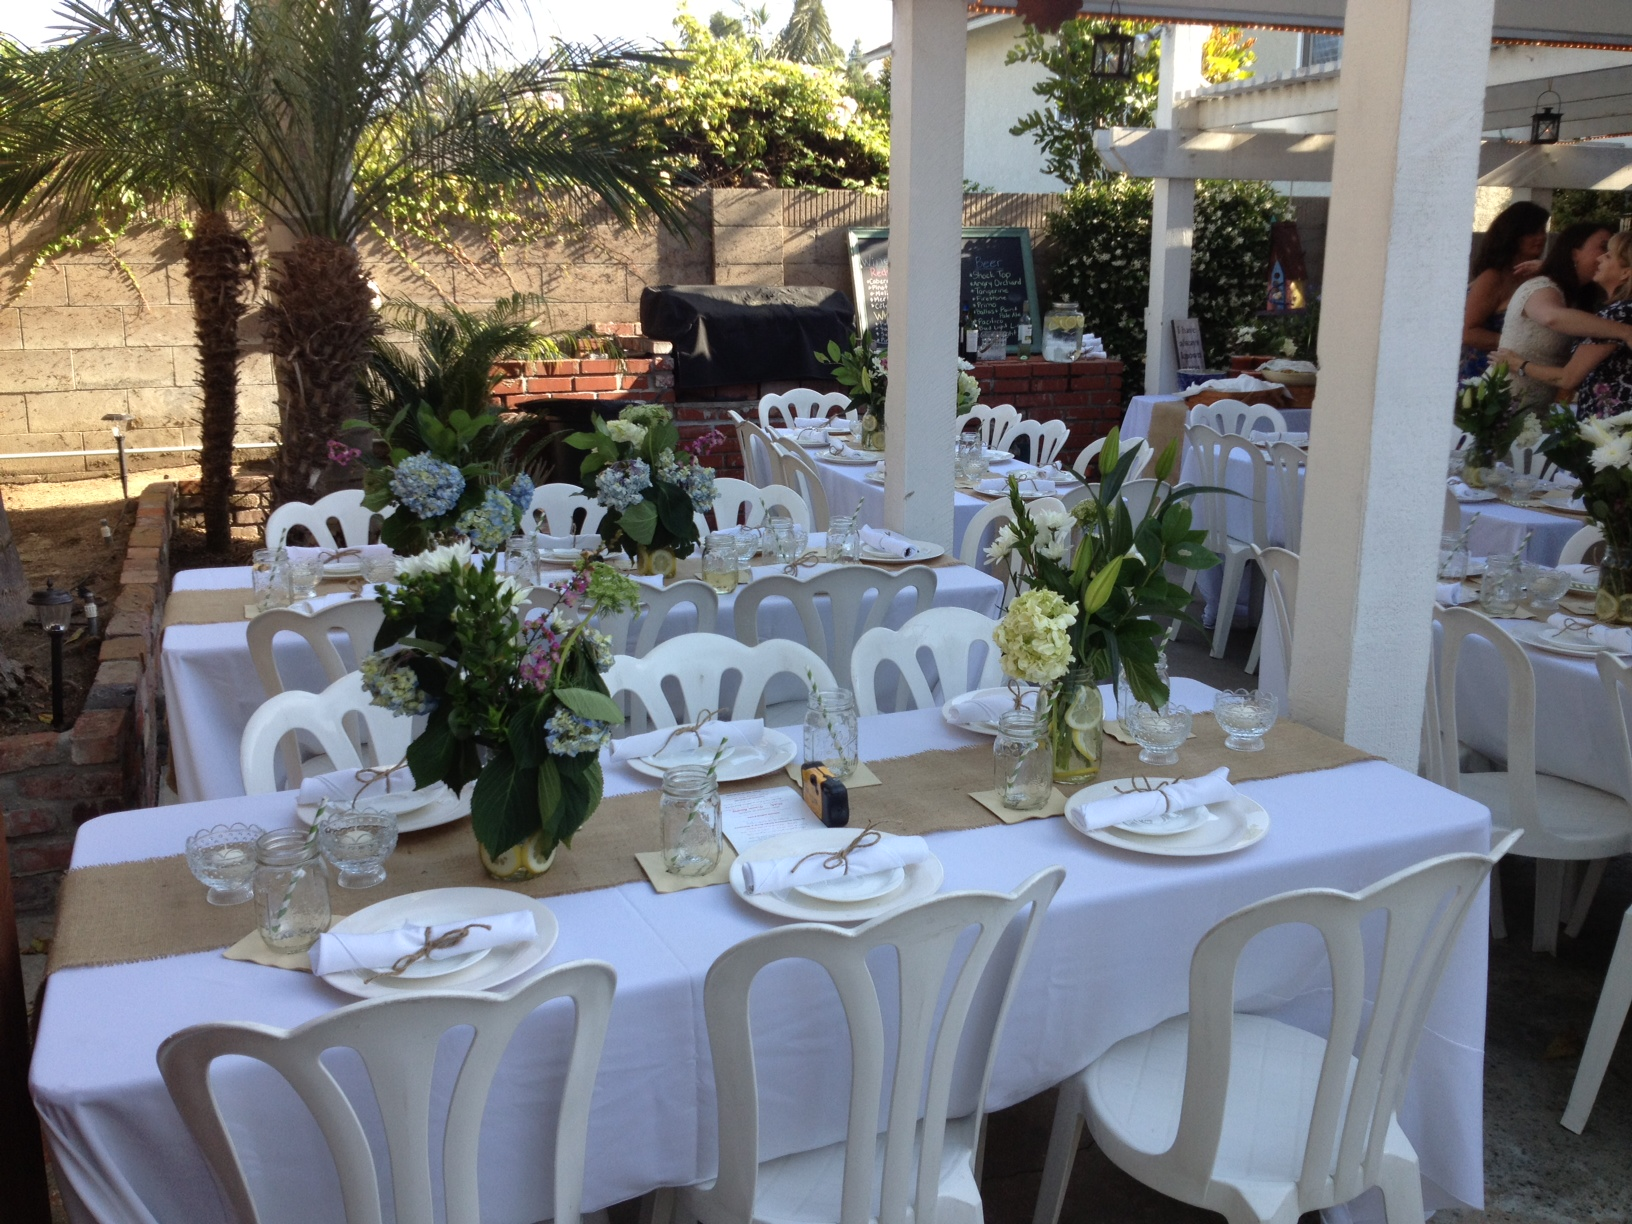 Wedding Reception In Backyard : Perfect SoCal weather for the perfect backyard wedding!